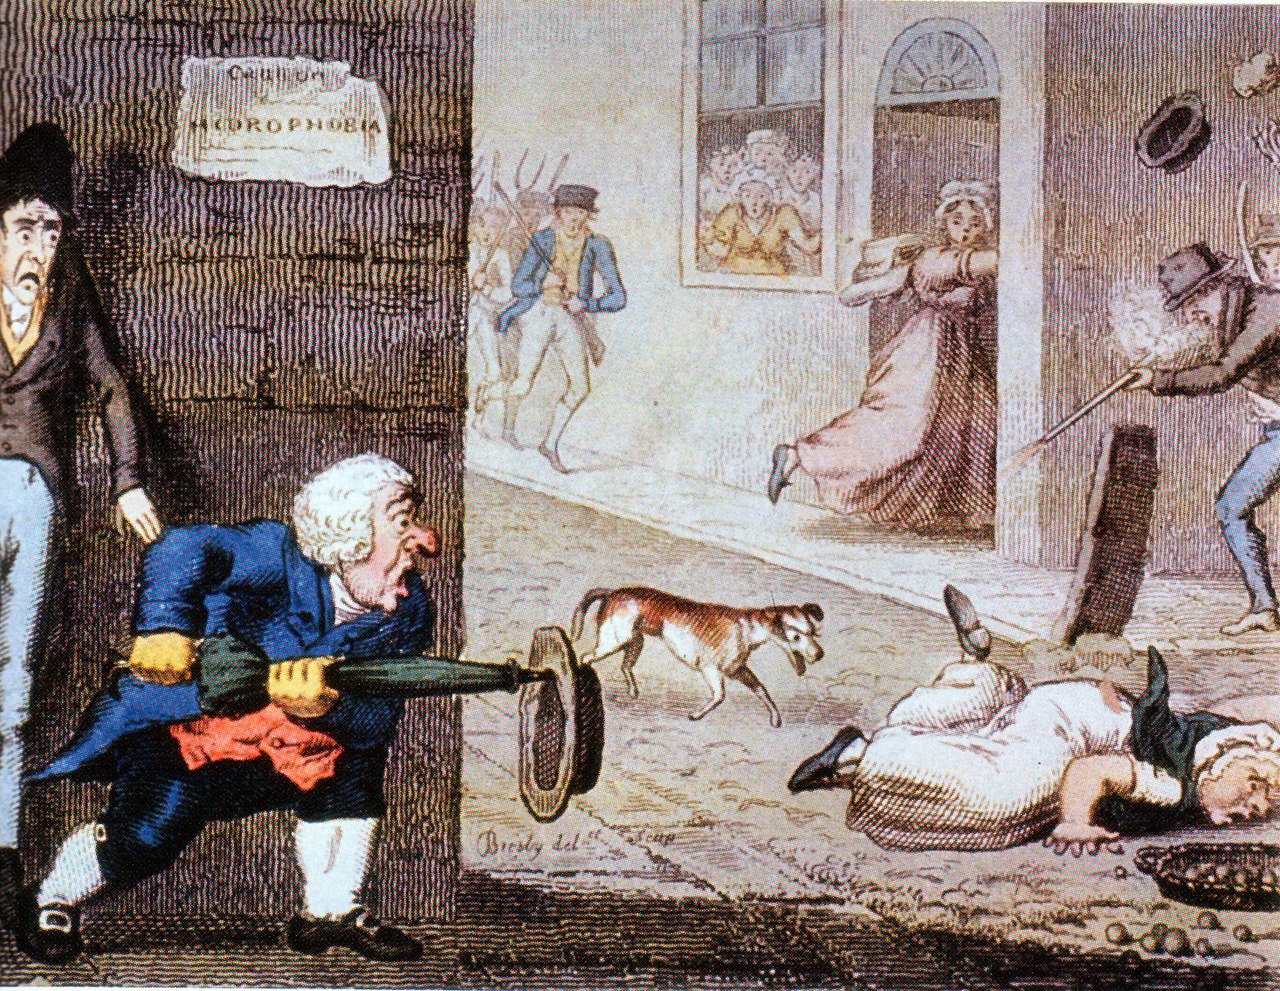 http://upload.wikimedia.org/wikipedia/commons/thumb/a/a7/Rabies_cartoon_circa_1826.jpg/1280px-Rabies_cartoon_circa_1826.jpg